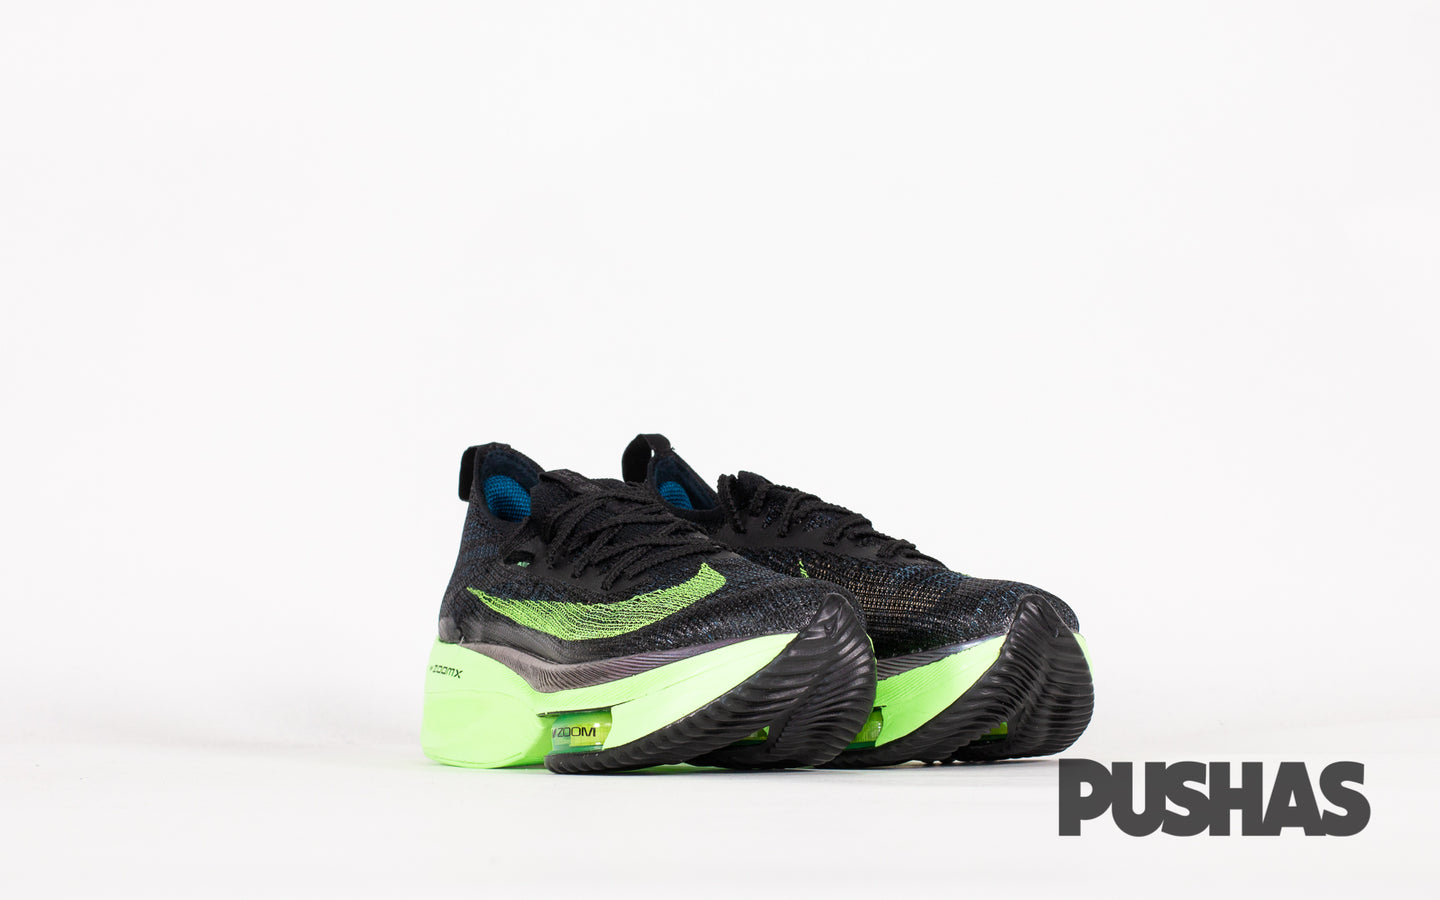 pushas-nike-Air-Zoom-Alphafly-Next%-Black-Electric-Green